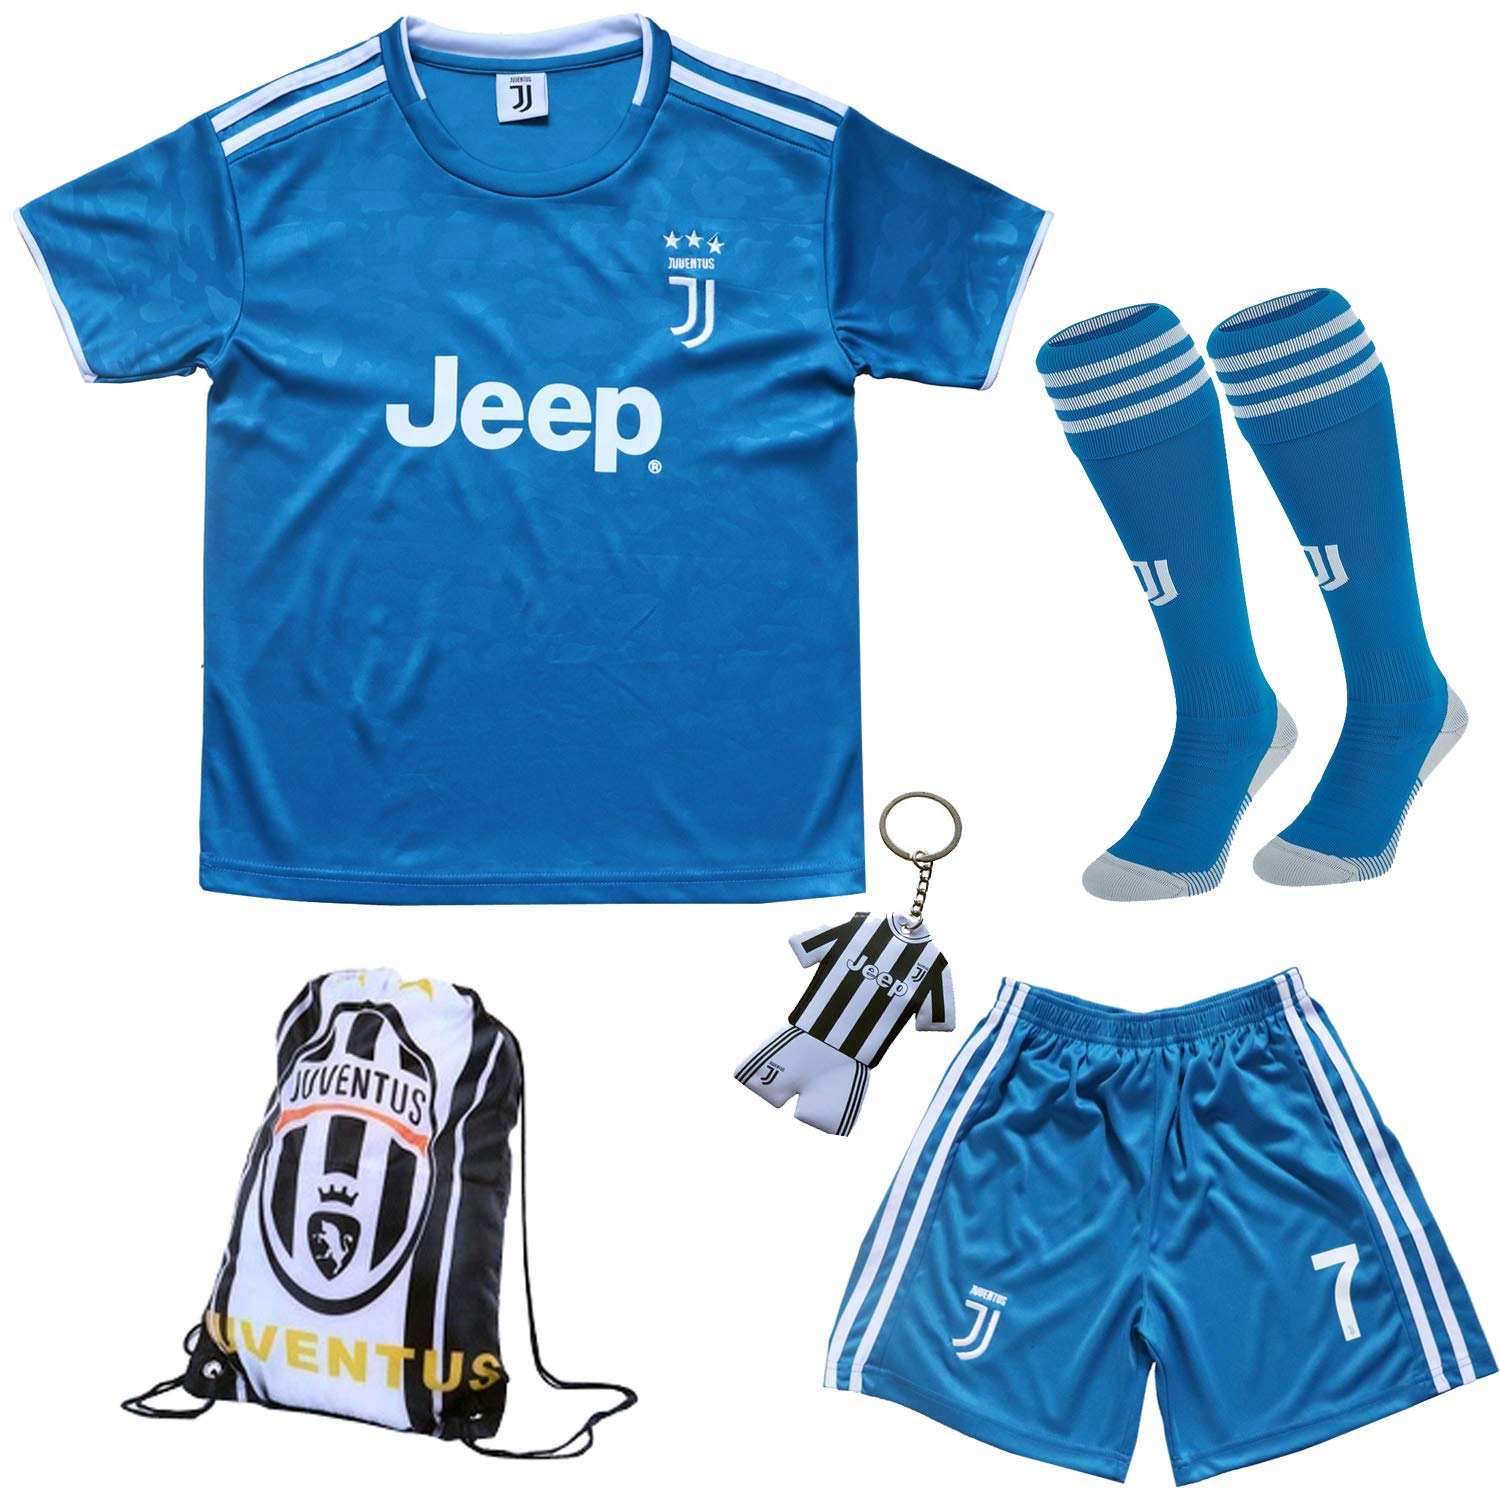 GamesDur 2019/2020 Ronaldo #7 Third Blue Soccer Kids Jersey & Short & Sock & Soccer Bag Youth Sizes